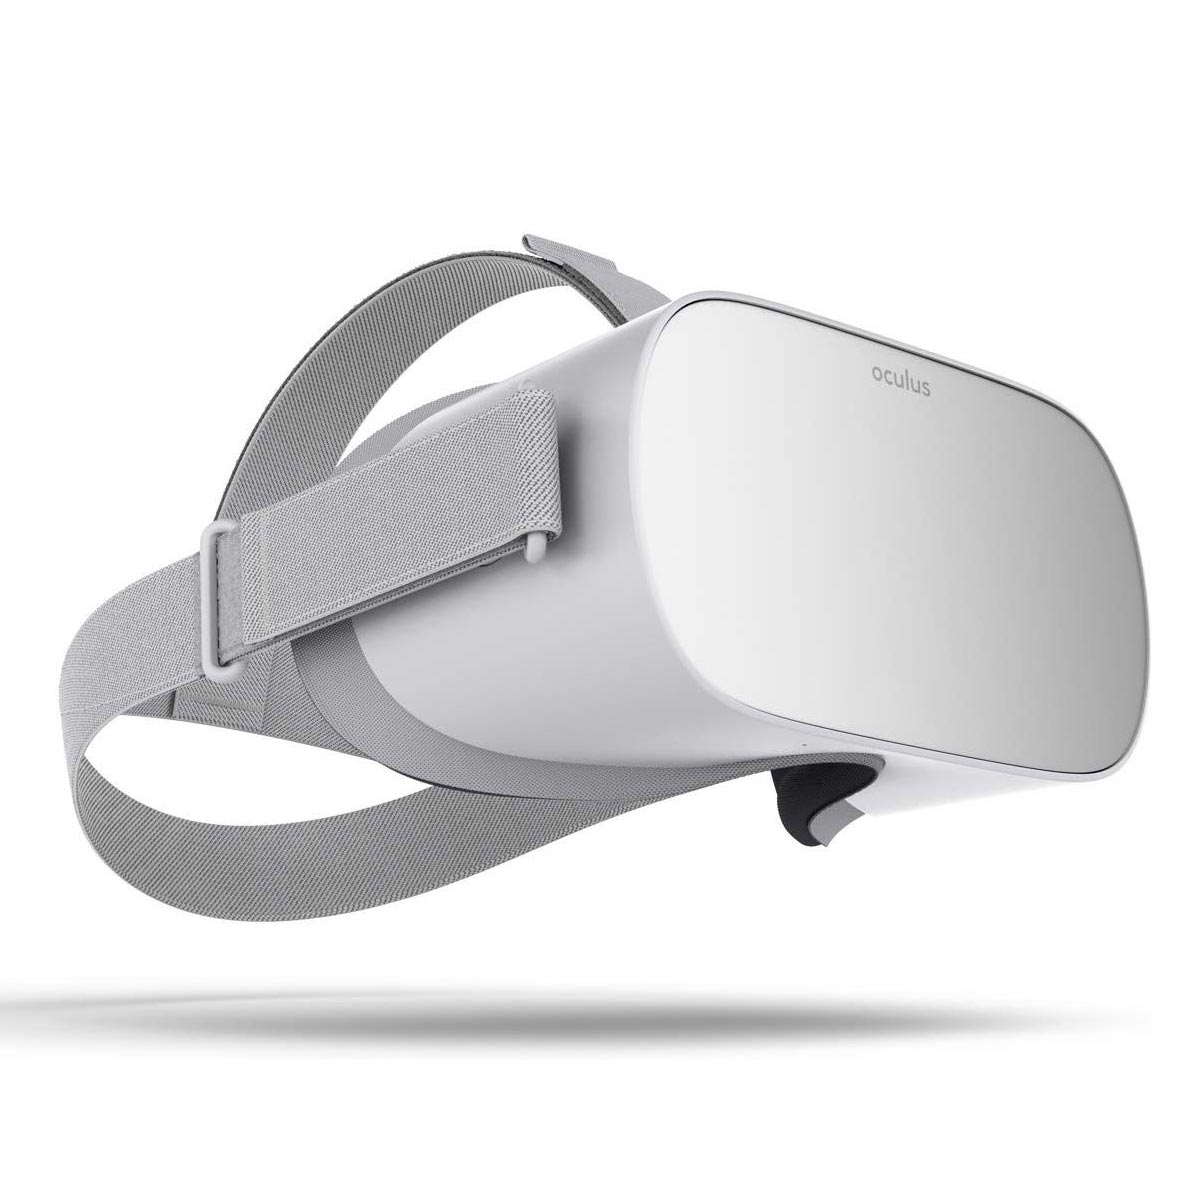 Oculus Go VR Headset (32GB)